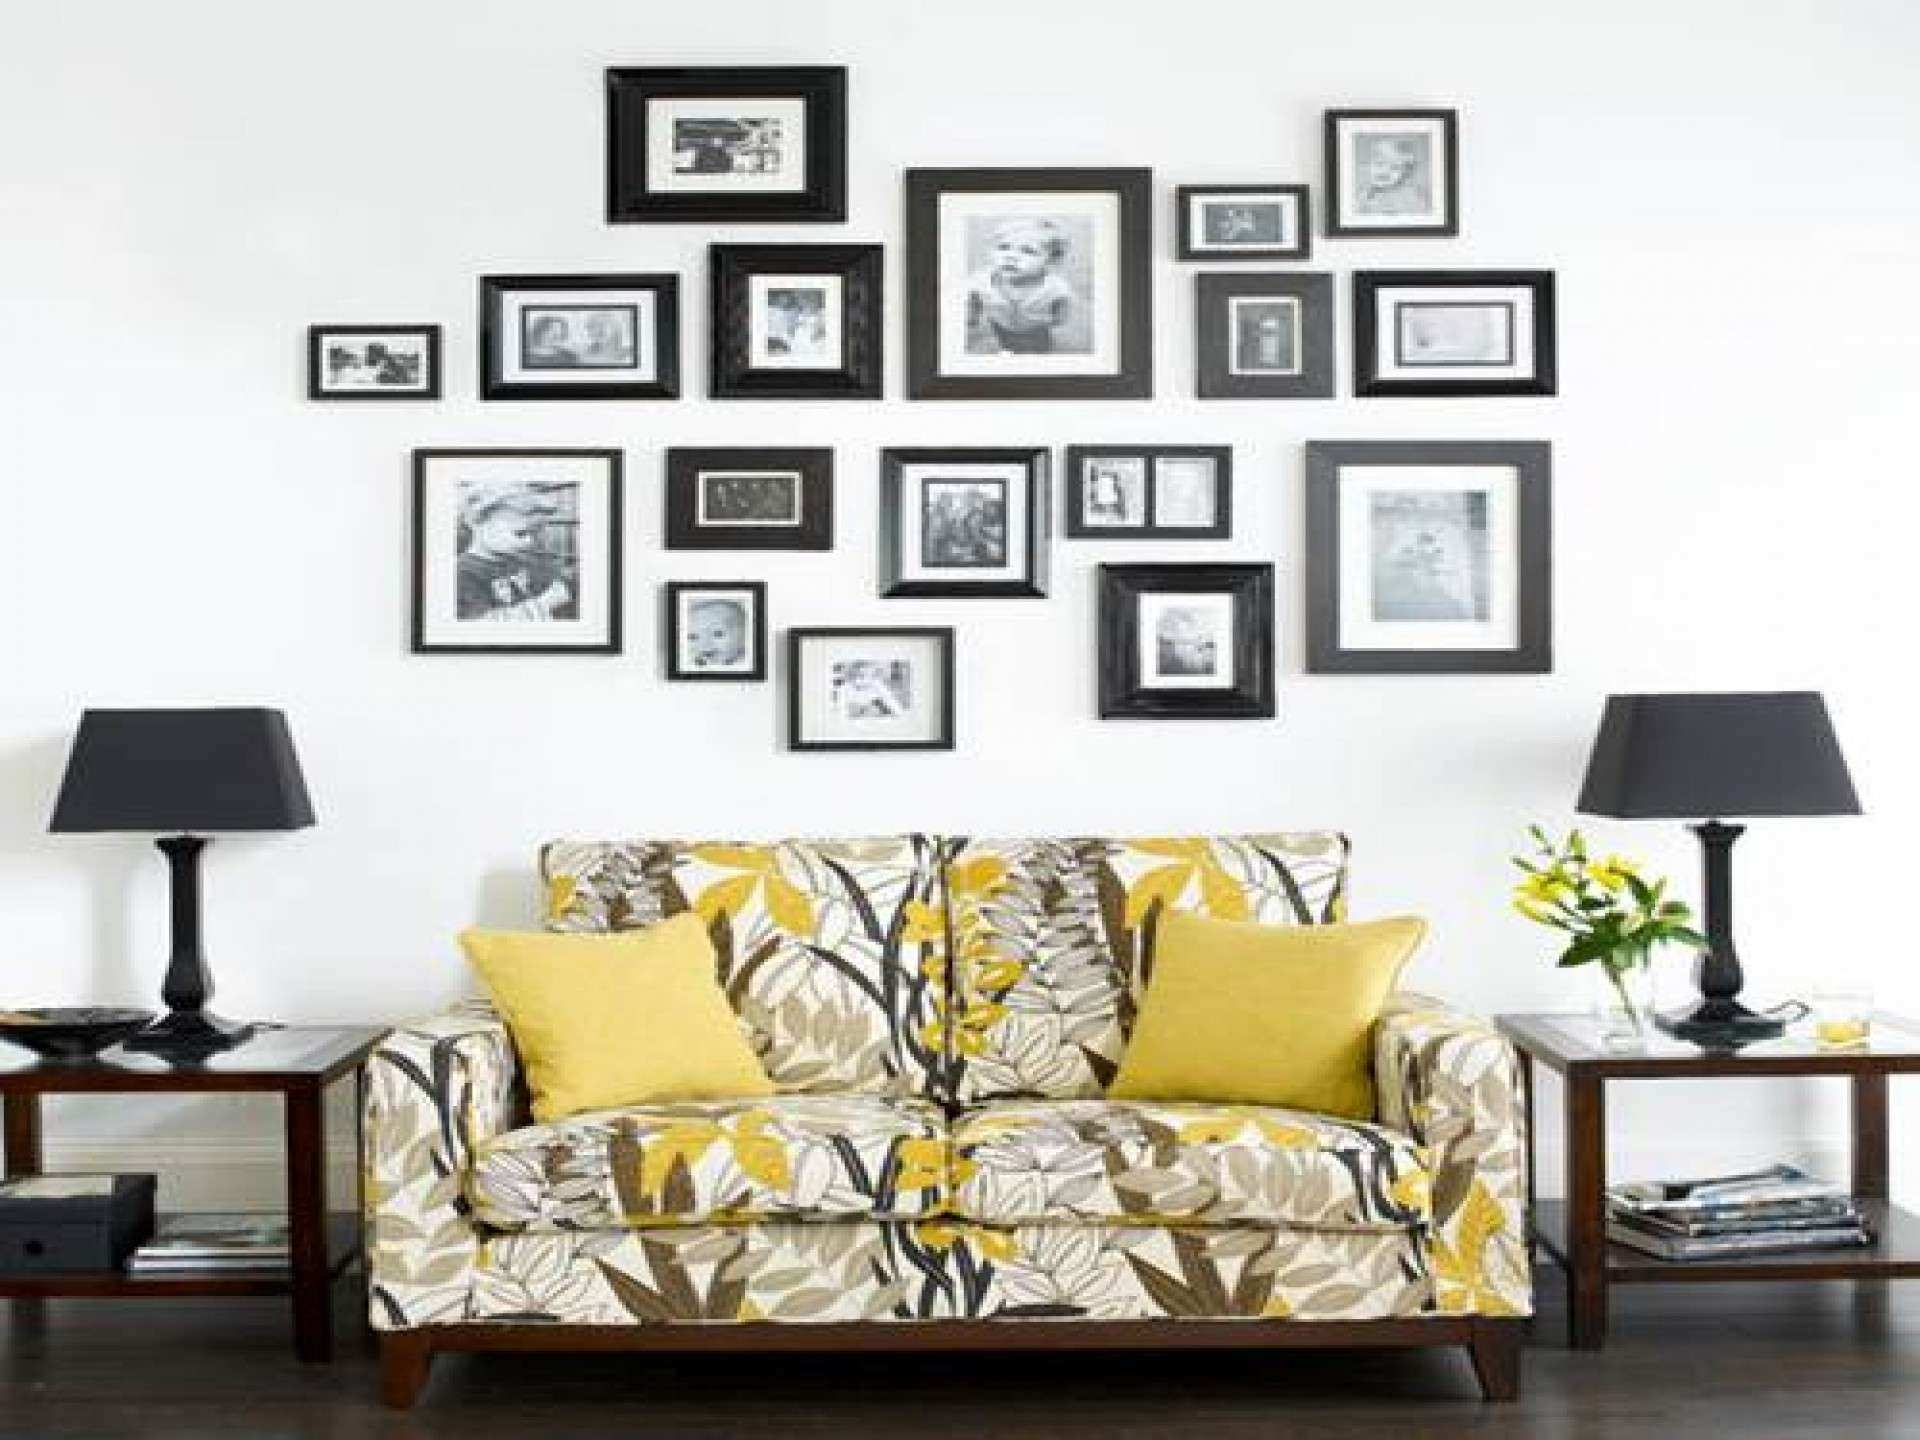 Wall picture frames for living room india for Wall picture frames for living room